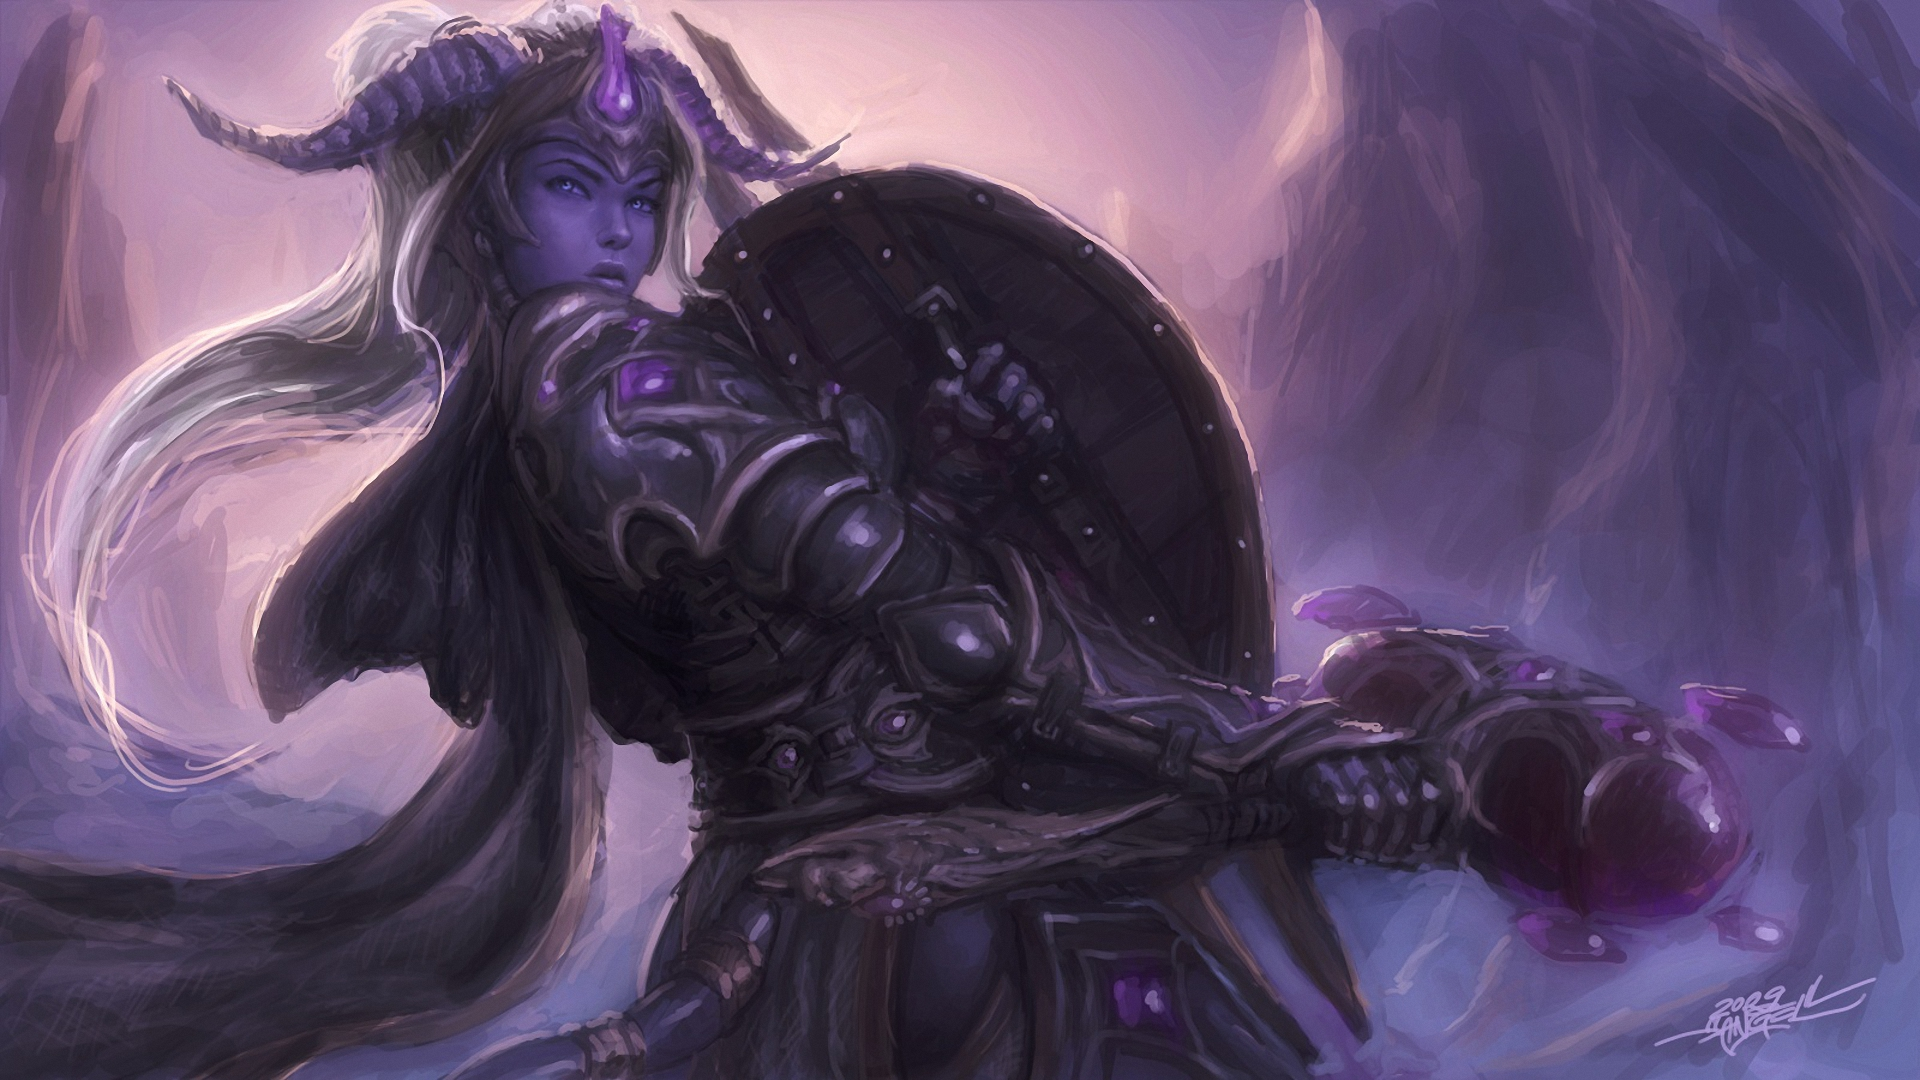 Paladin dyah hd wallpaper background image 1920x1080 - World of warcraft images ...